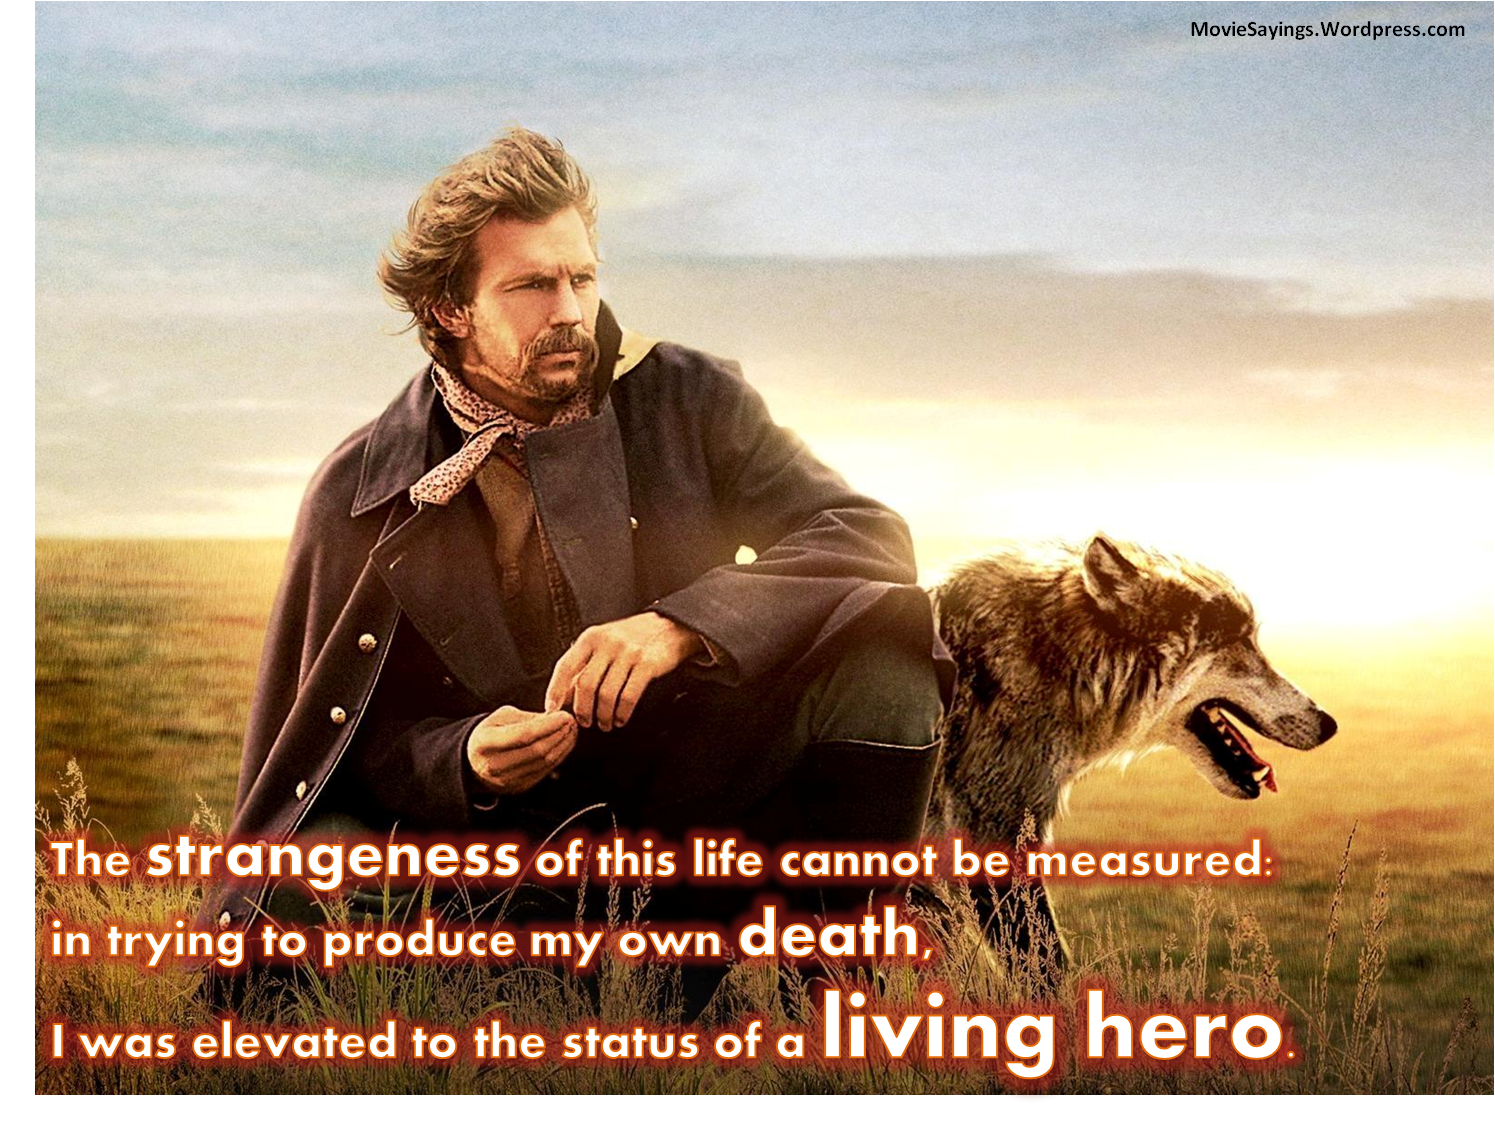 Dances with Wolves quotes | Movie Sayings